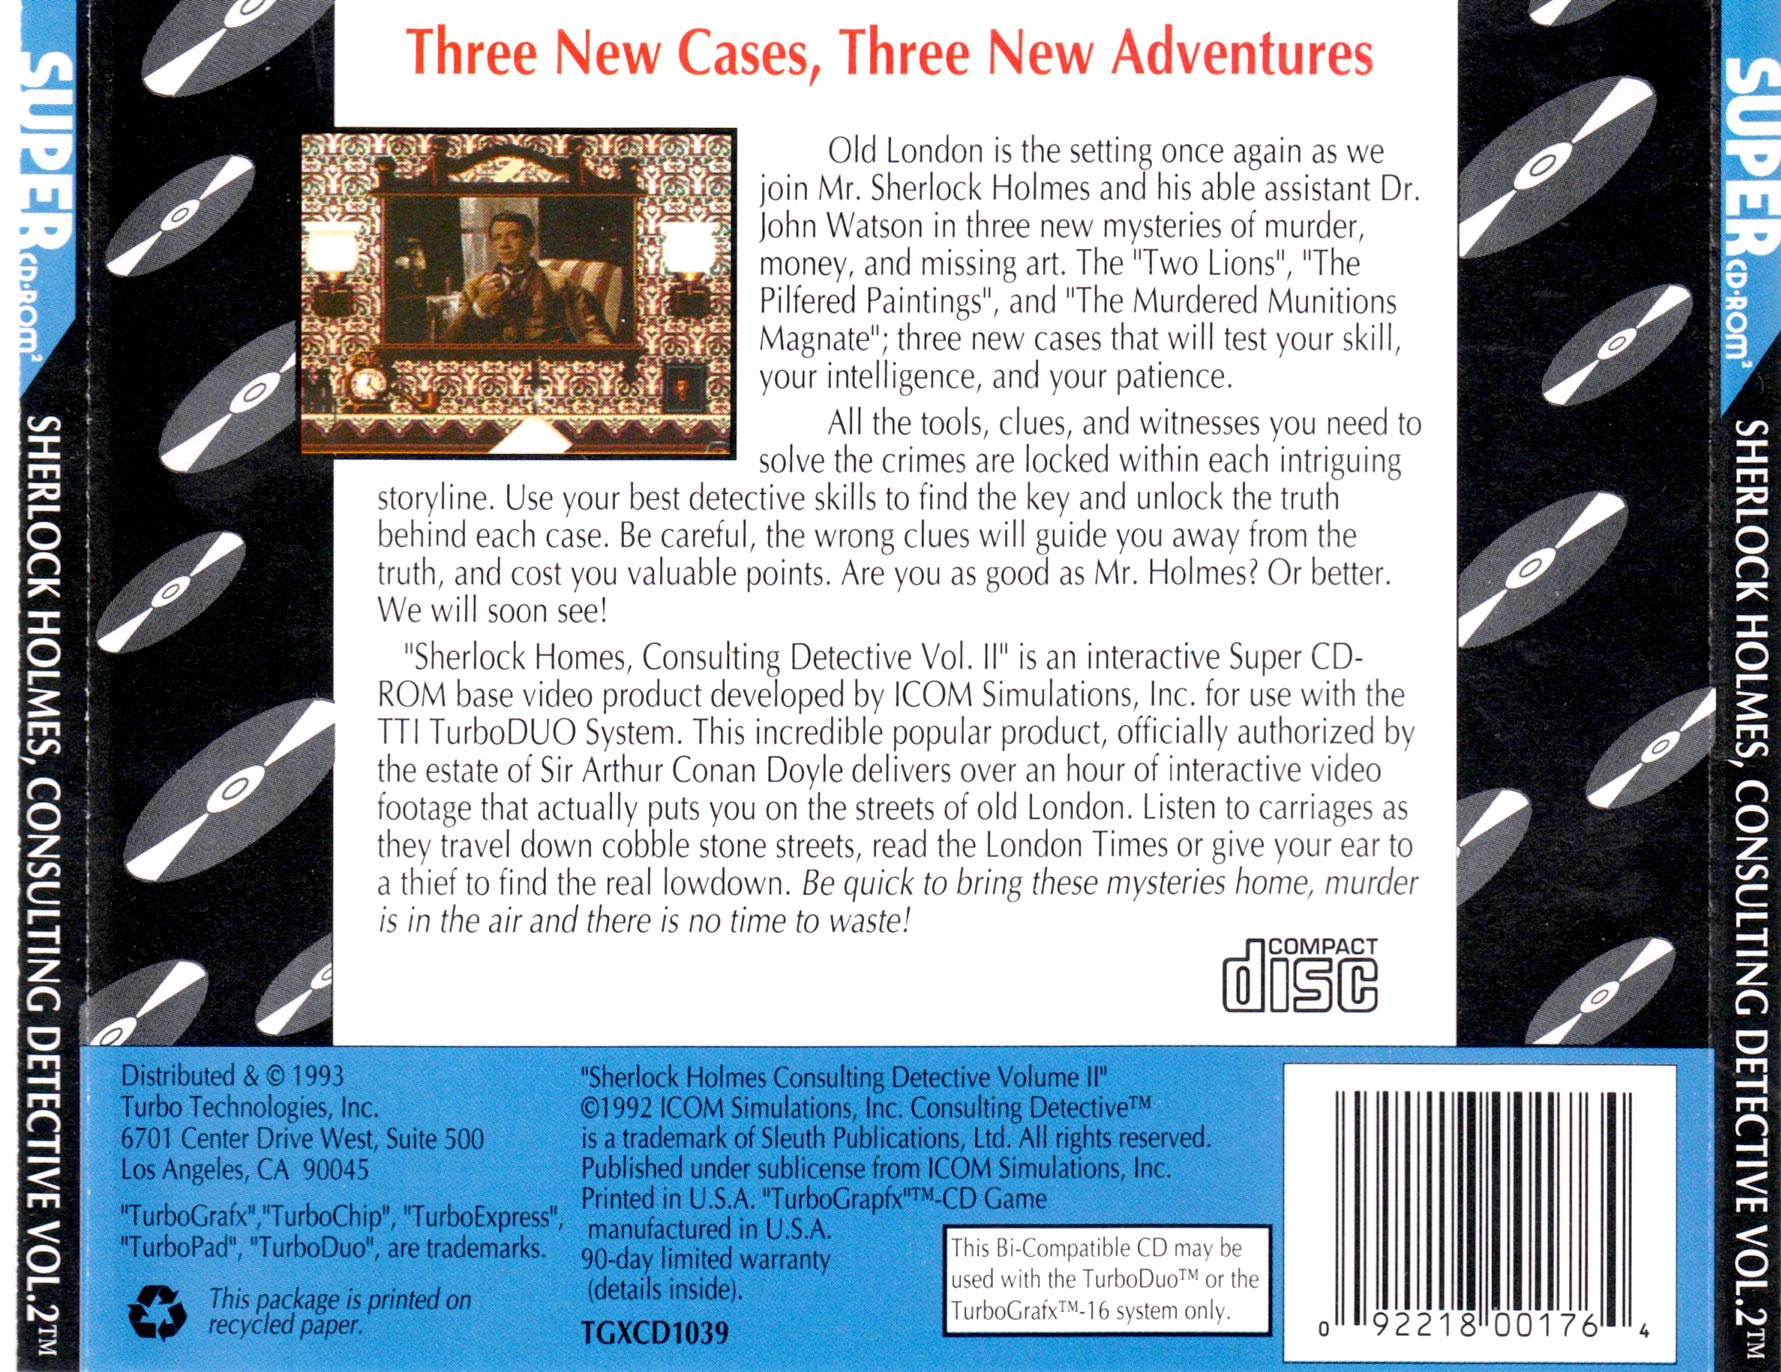 US-SHERLOCK HOLMES CONSULTING DETECTIVE VOL. 2]